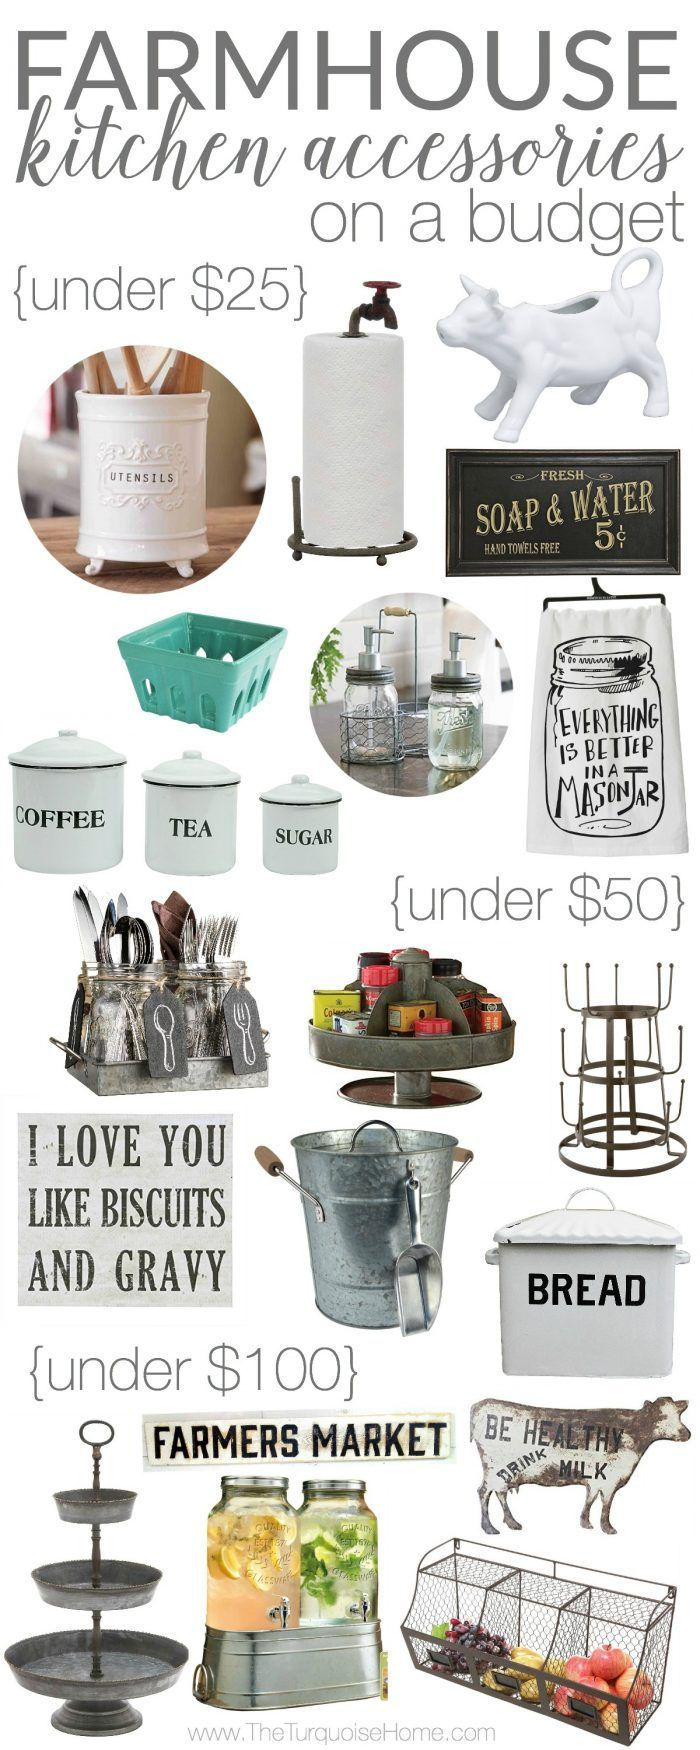 Attrayant Farmhouse Kitchen Accessories On A Budget | Dream Homes | Pinterest | Home  Decor, Home And Farmhouse